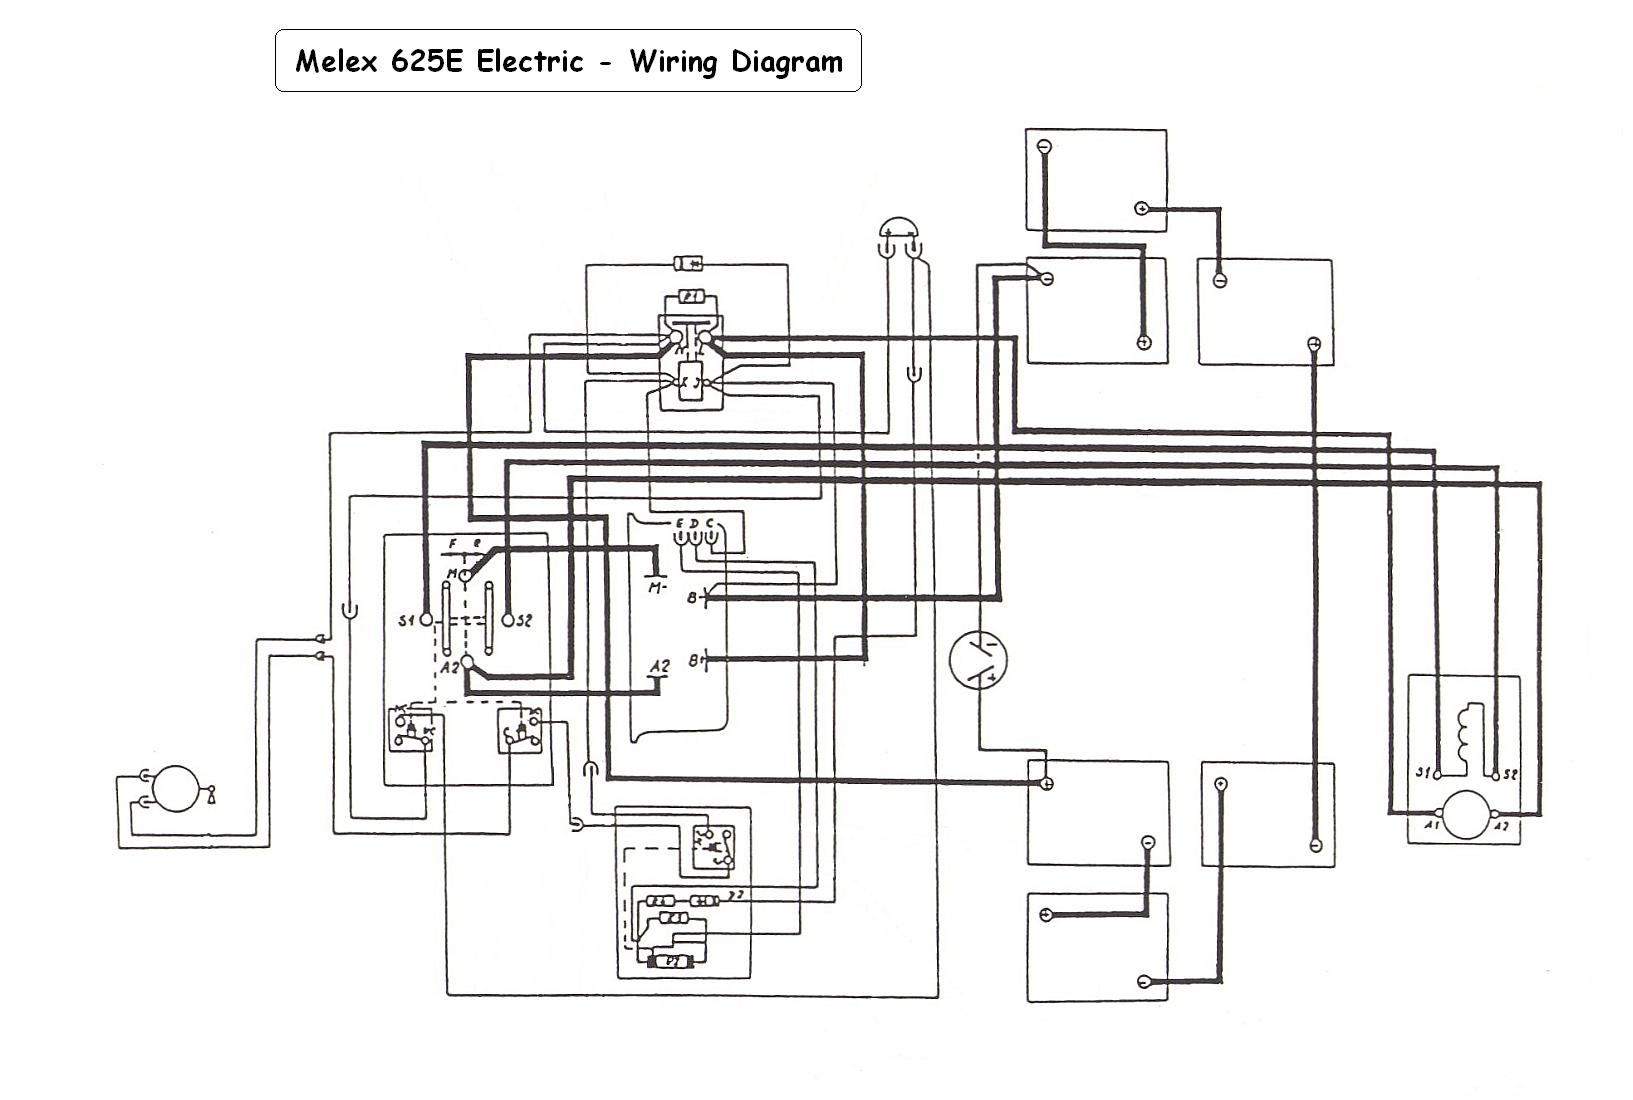 Cartaholics Golf Cart Forum Gt Wiring Diagram as well Power Window Wiring Diagram also Wiring Diagram 2008 Civic Blower Motor in addition Acura Cl Power Seat Wiring Diagram also  on 2004 nissan an wiring diagrams